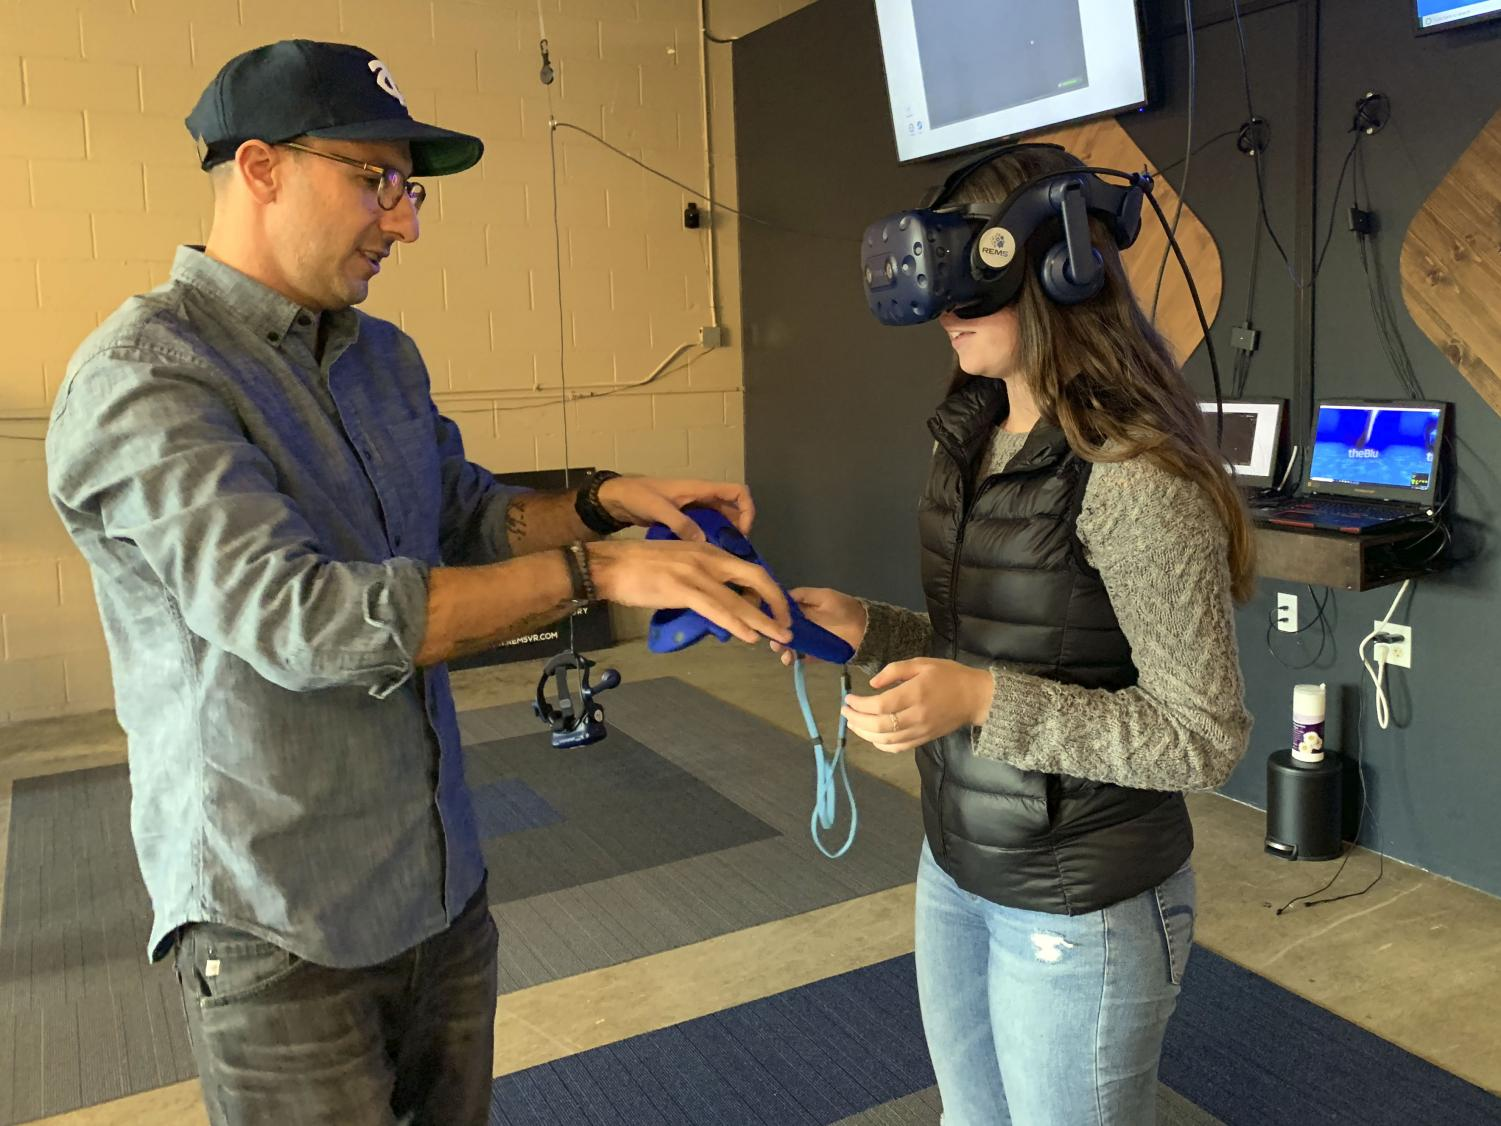 Owner of Rem5VR lab, Amir Berenjian helps set up a game of virtual reality fruit ninja.